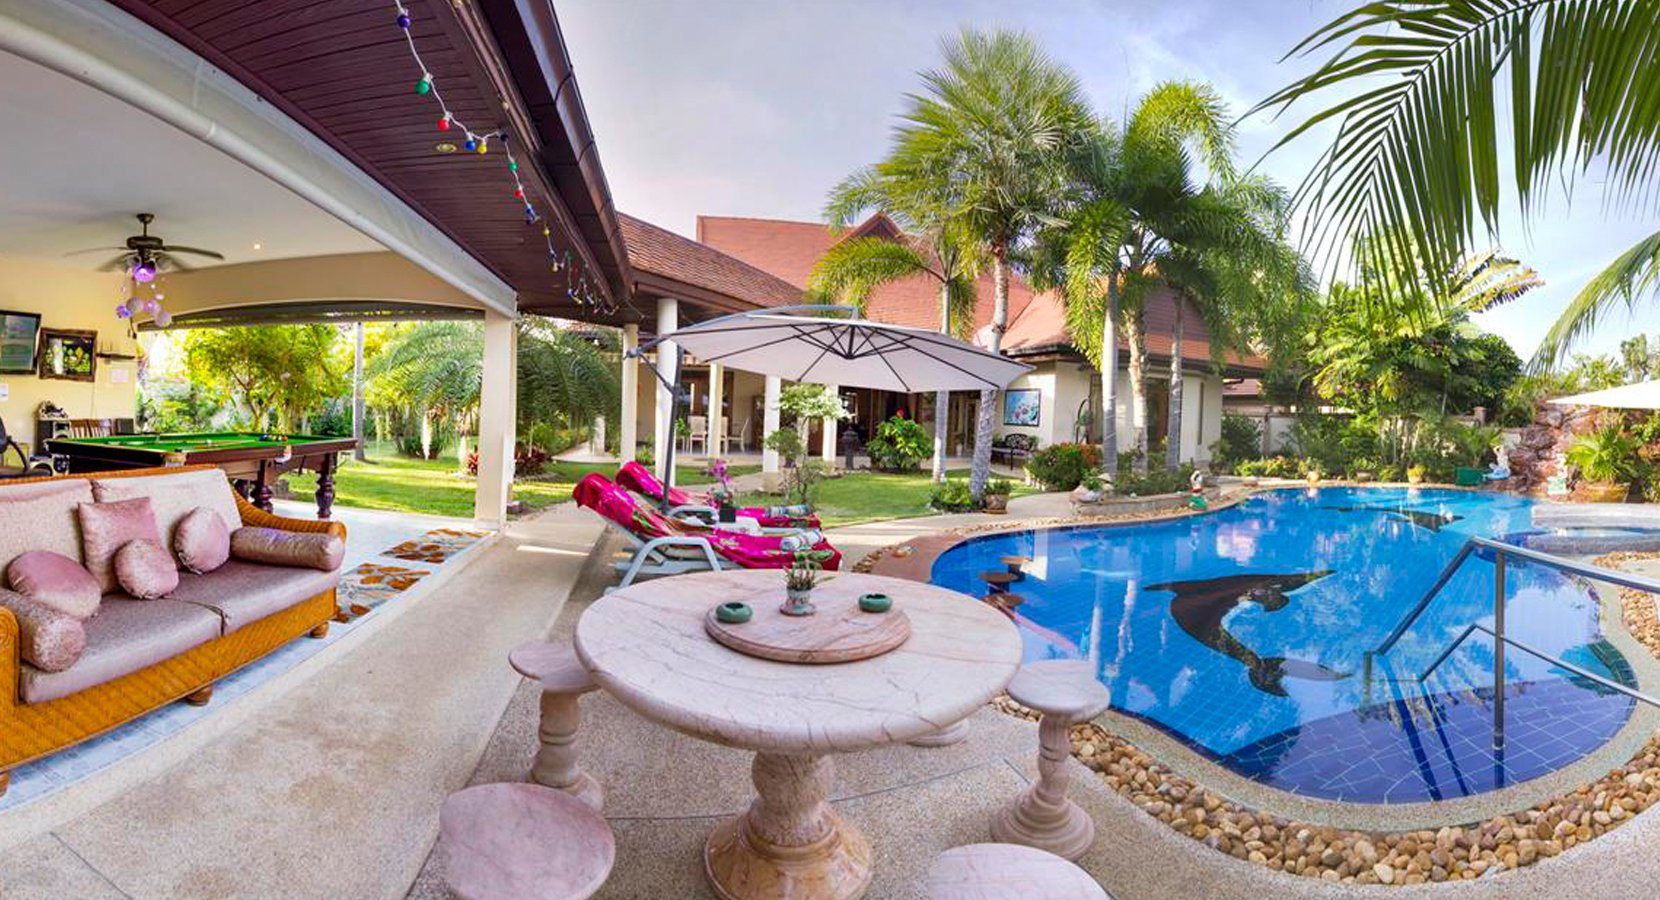 Luxury Villa in Pattaya on Rent View